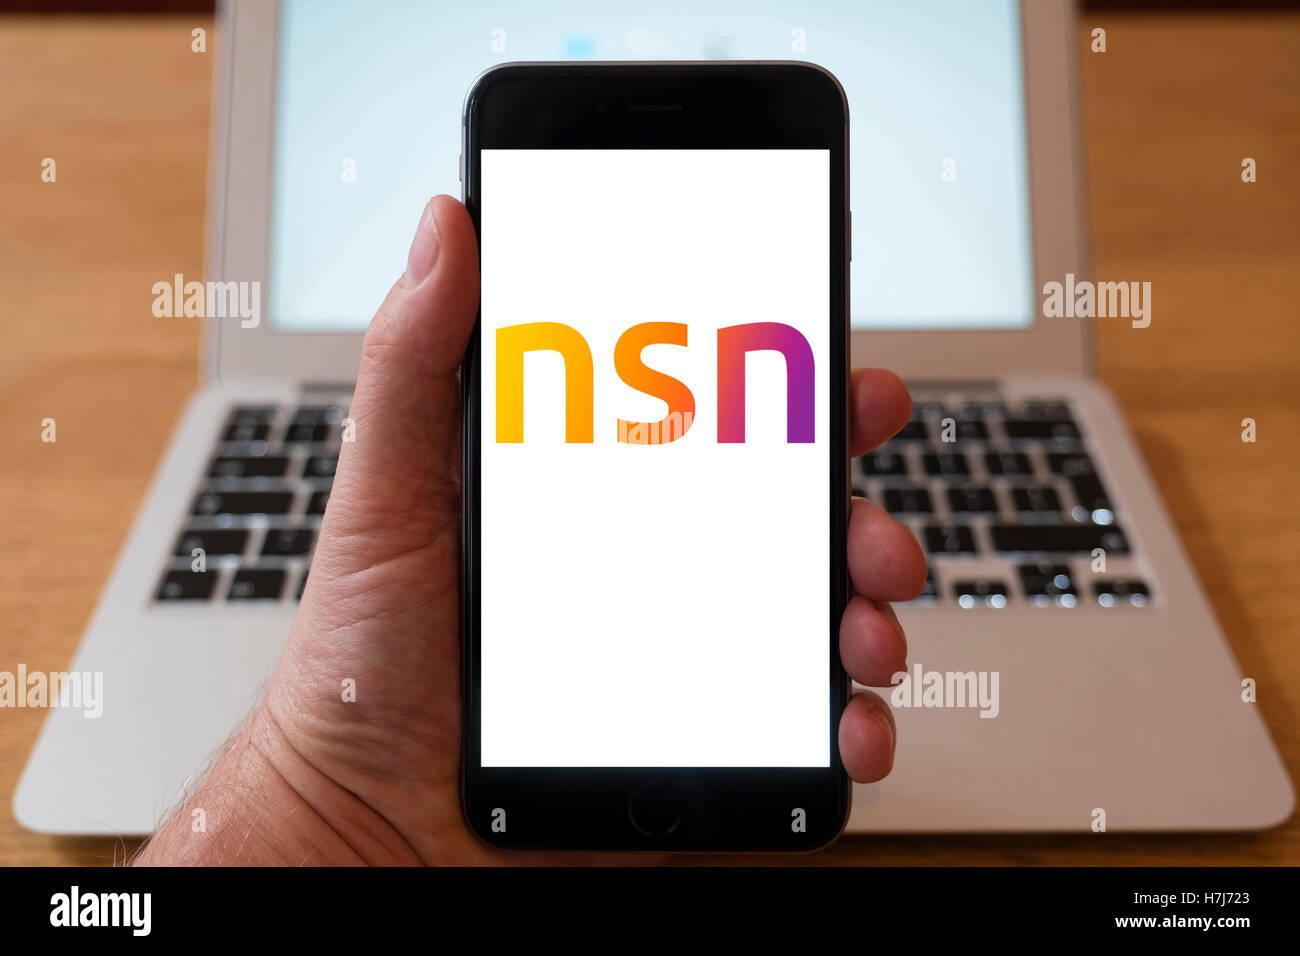 Using iPhone smartphone to display logo of Nokia Siemens Networks, multinational data networking and telecommunications - Stock Image